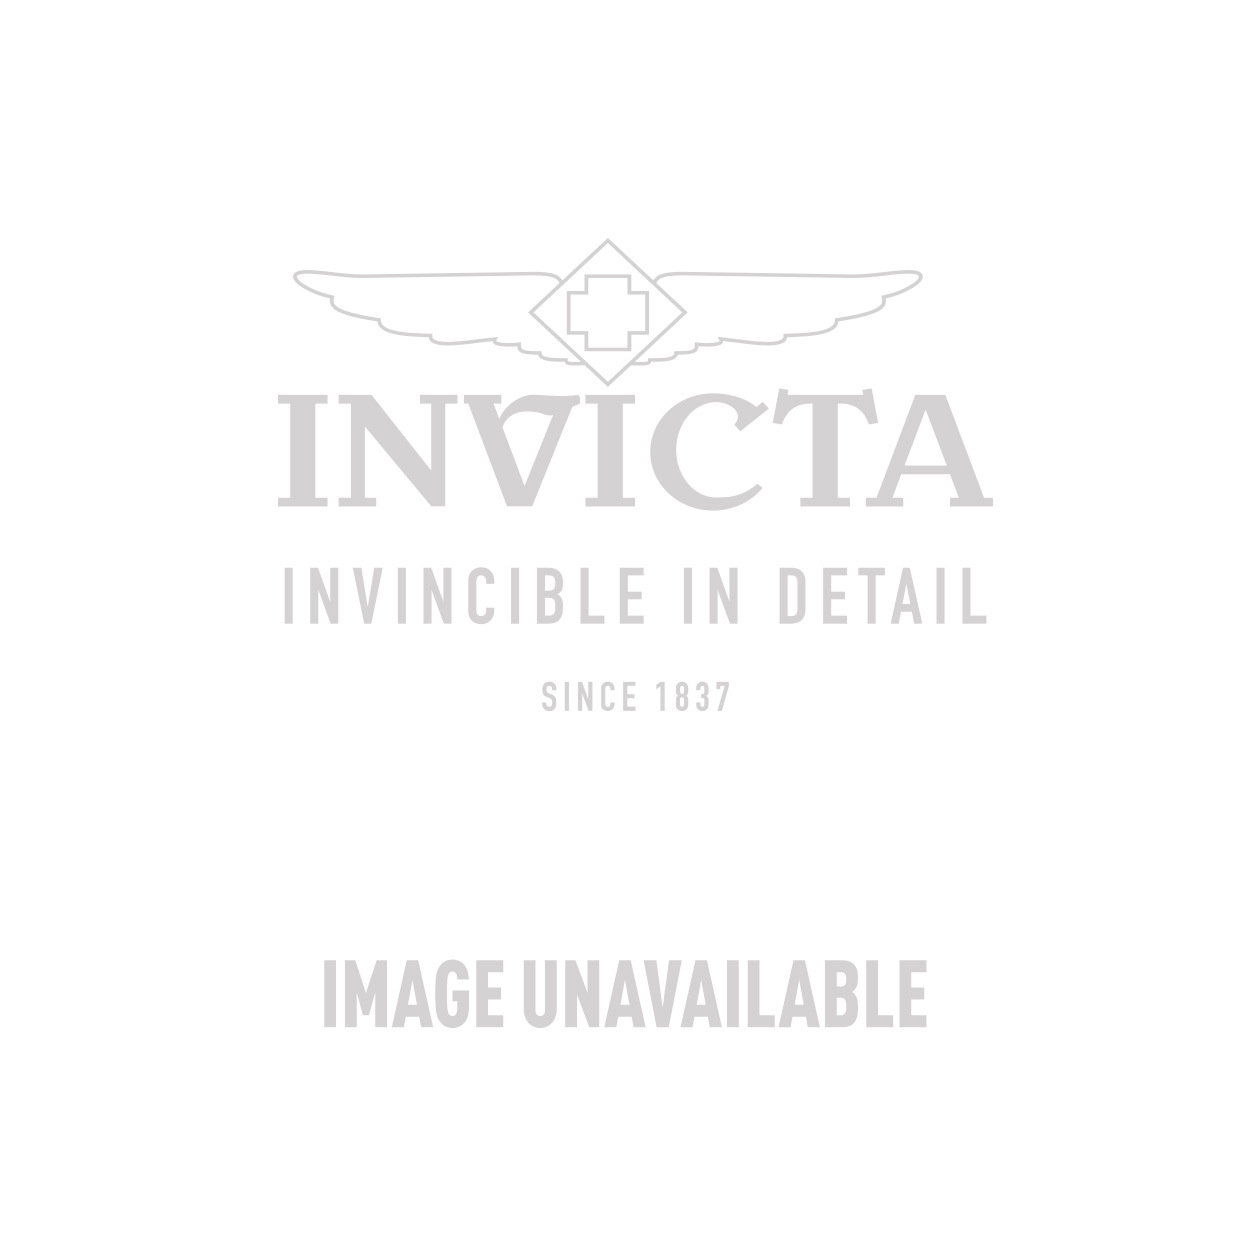 Invicta Angel Swiss Movement Quartz Watch - Rose Gold case with Rose Gold tone Stainless Steel band - Model 12509